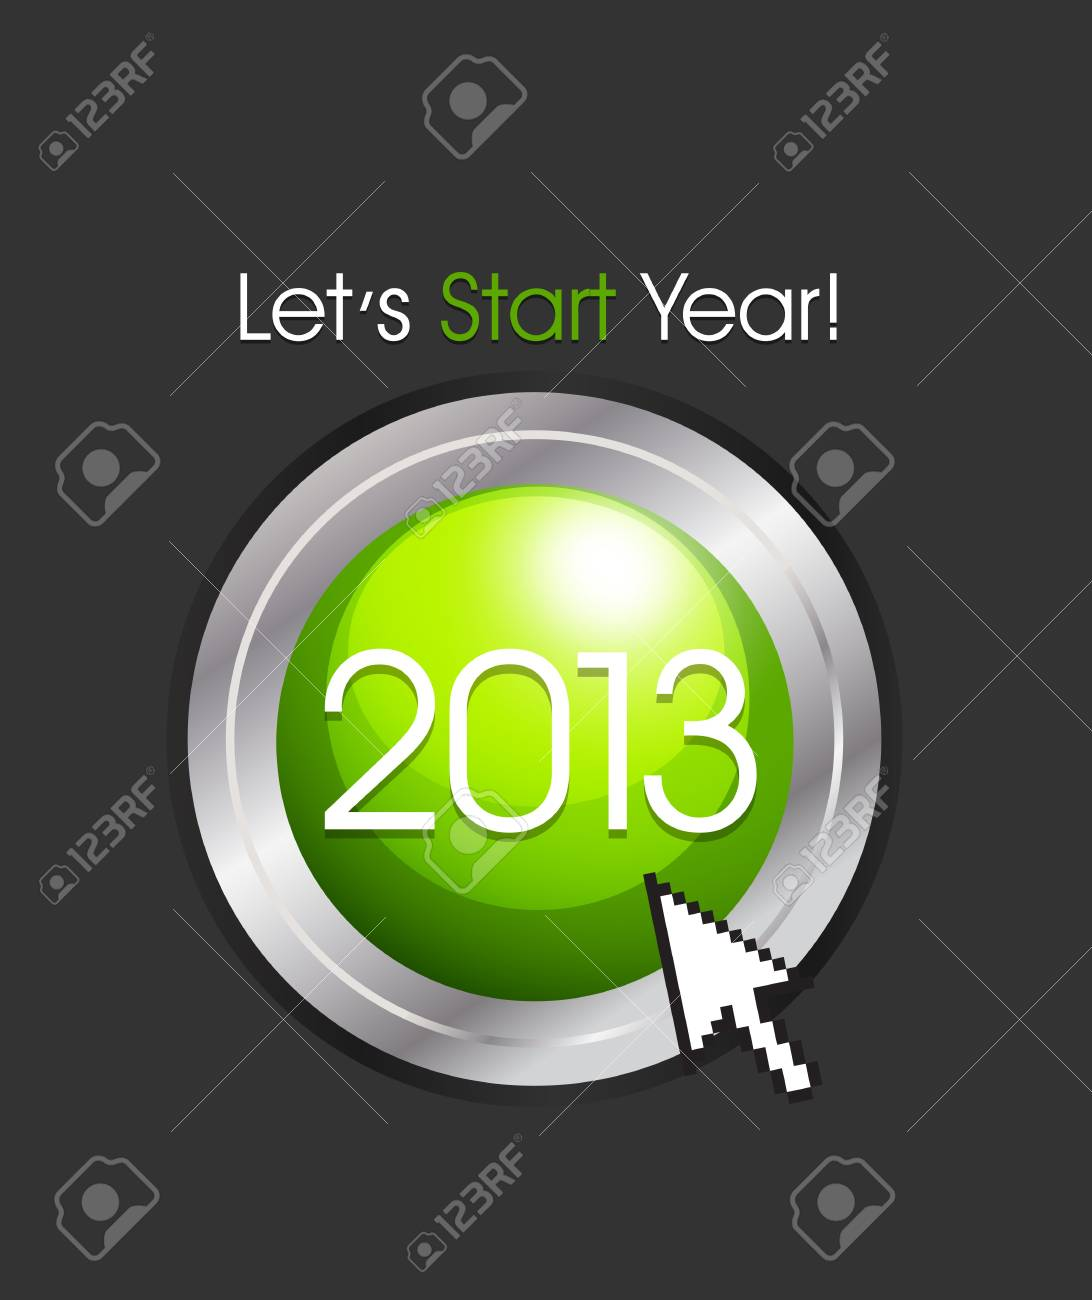 2013 New Year Button Stock Vector - 15821034